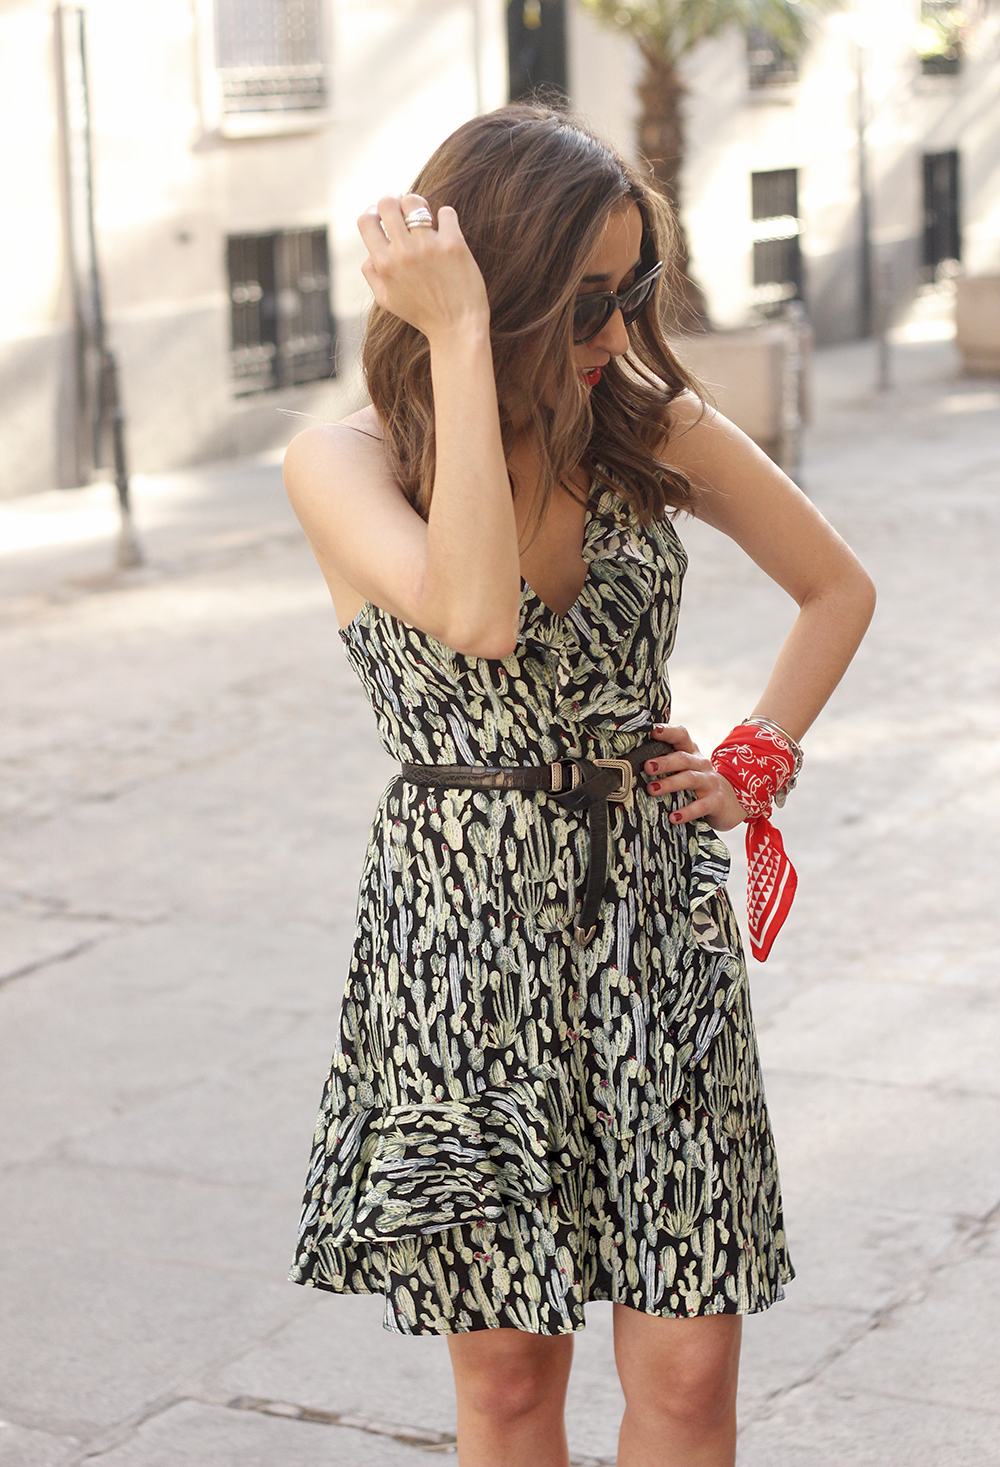 summer dress with cactus prints black sandals sunnies outfit style 07